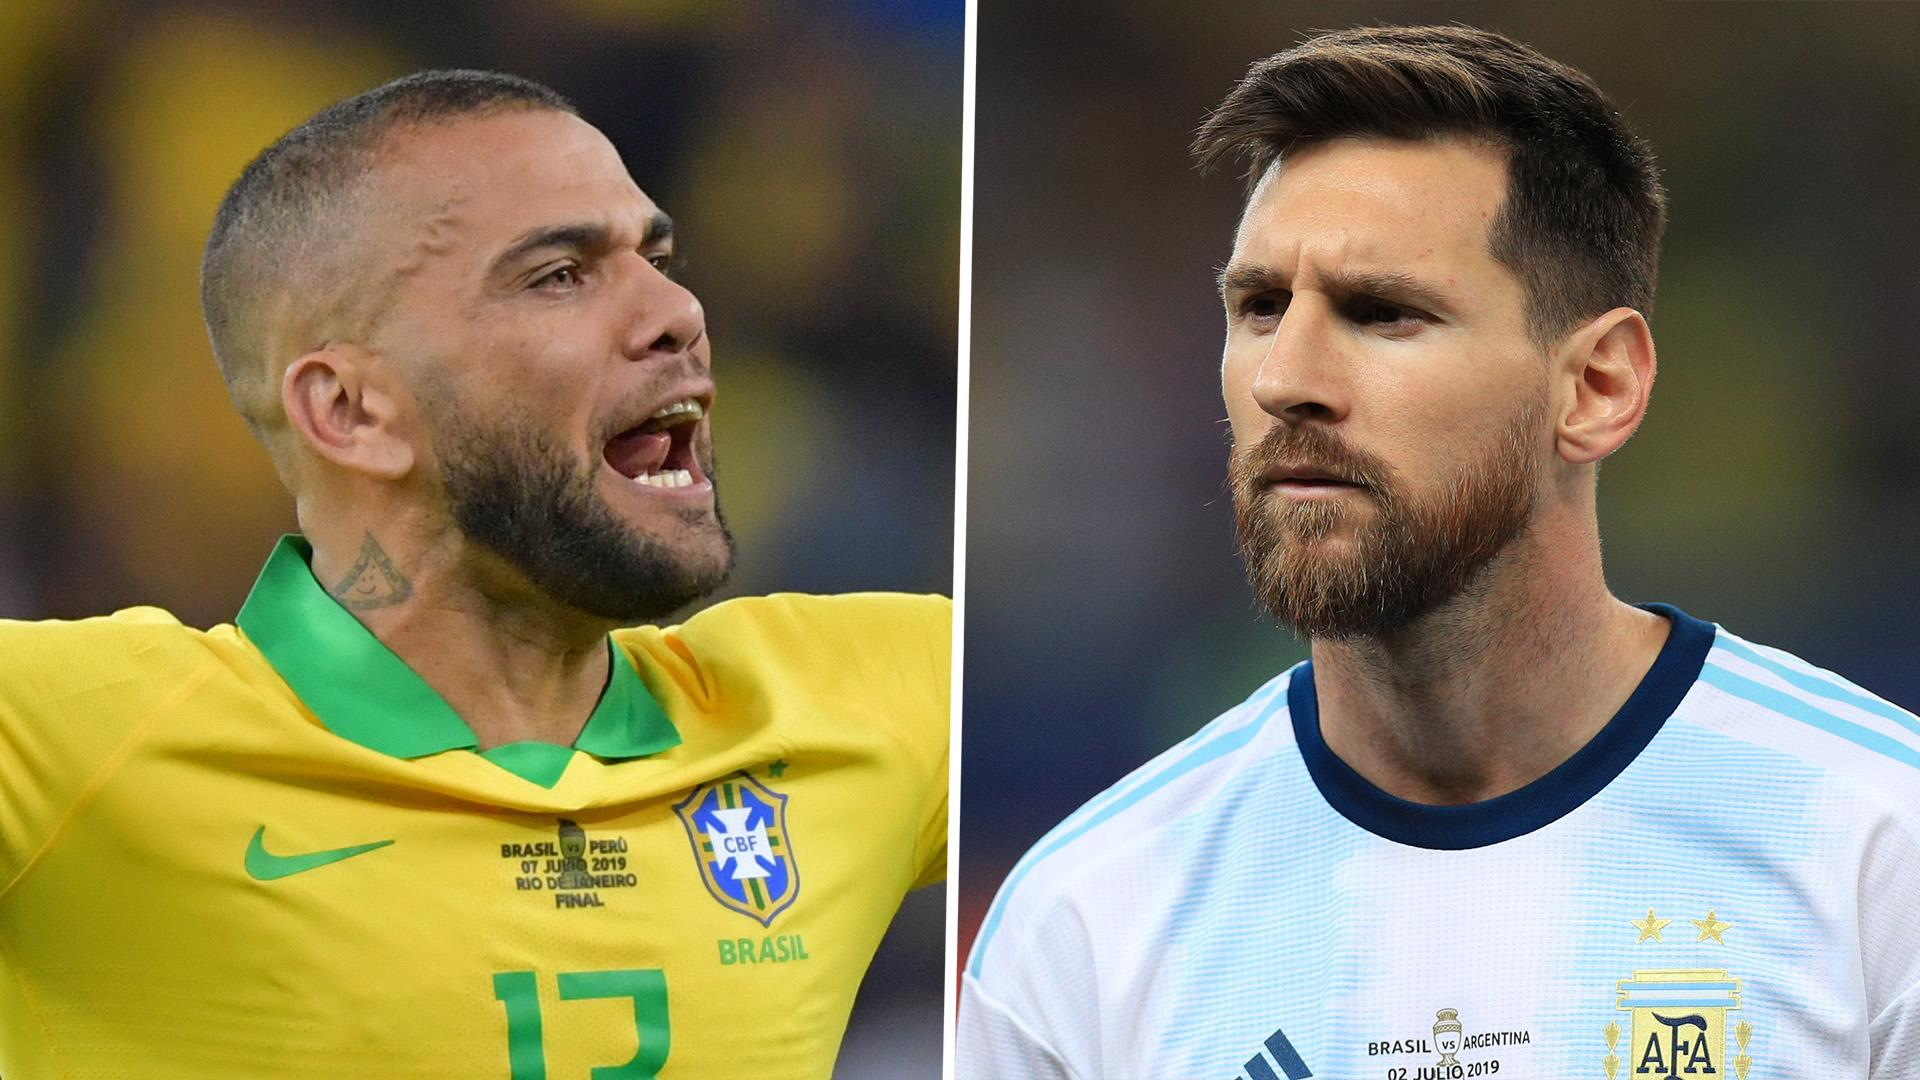 Messi Was Disrespectful Alves Criticises Long Time Barcelona Team Mate Following Copa America Corruption Claims